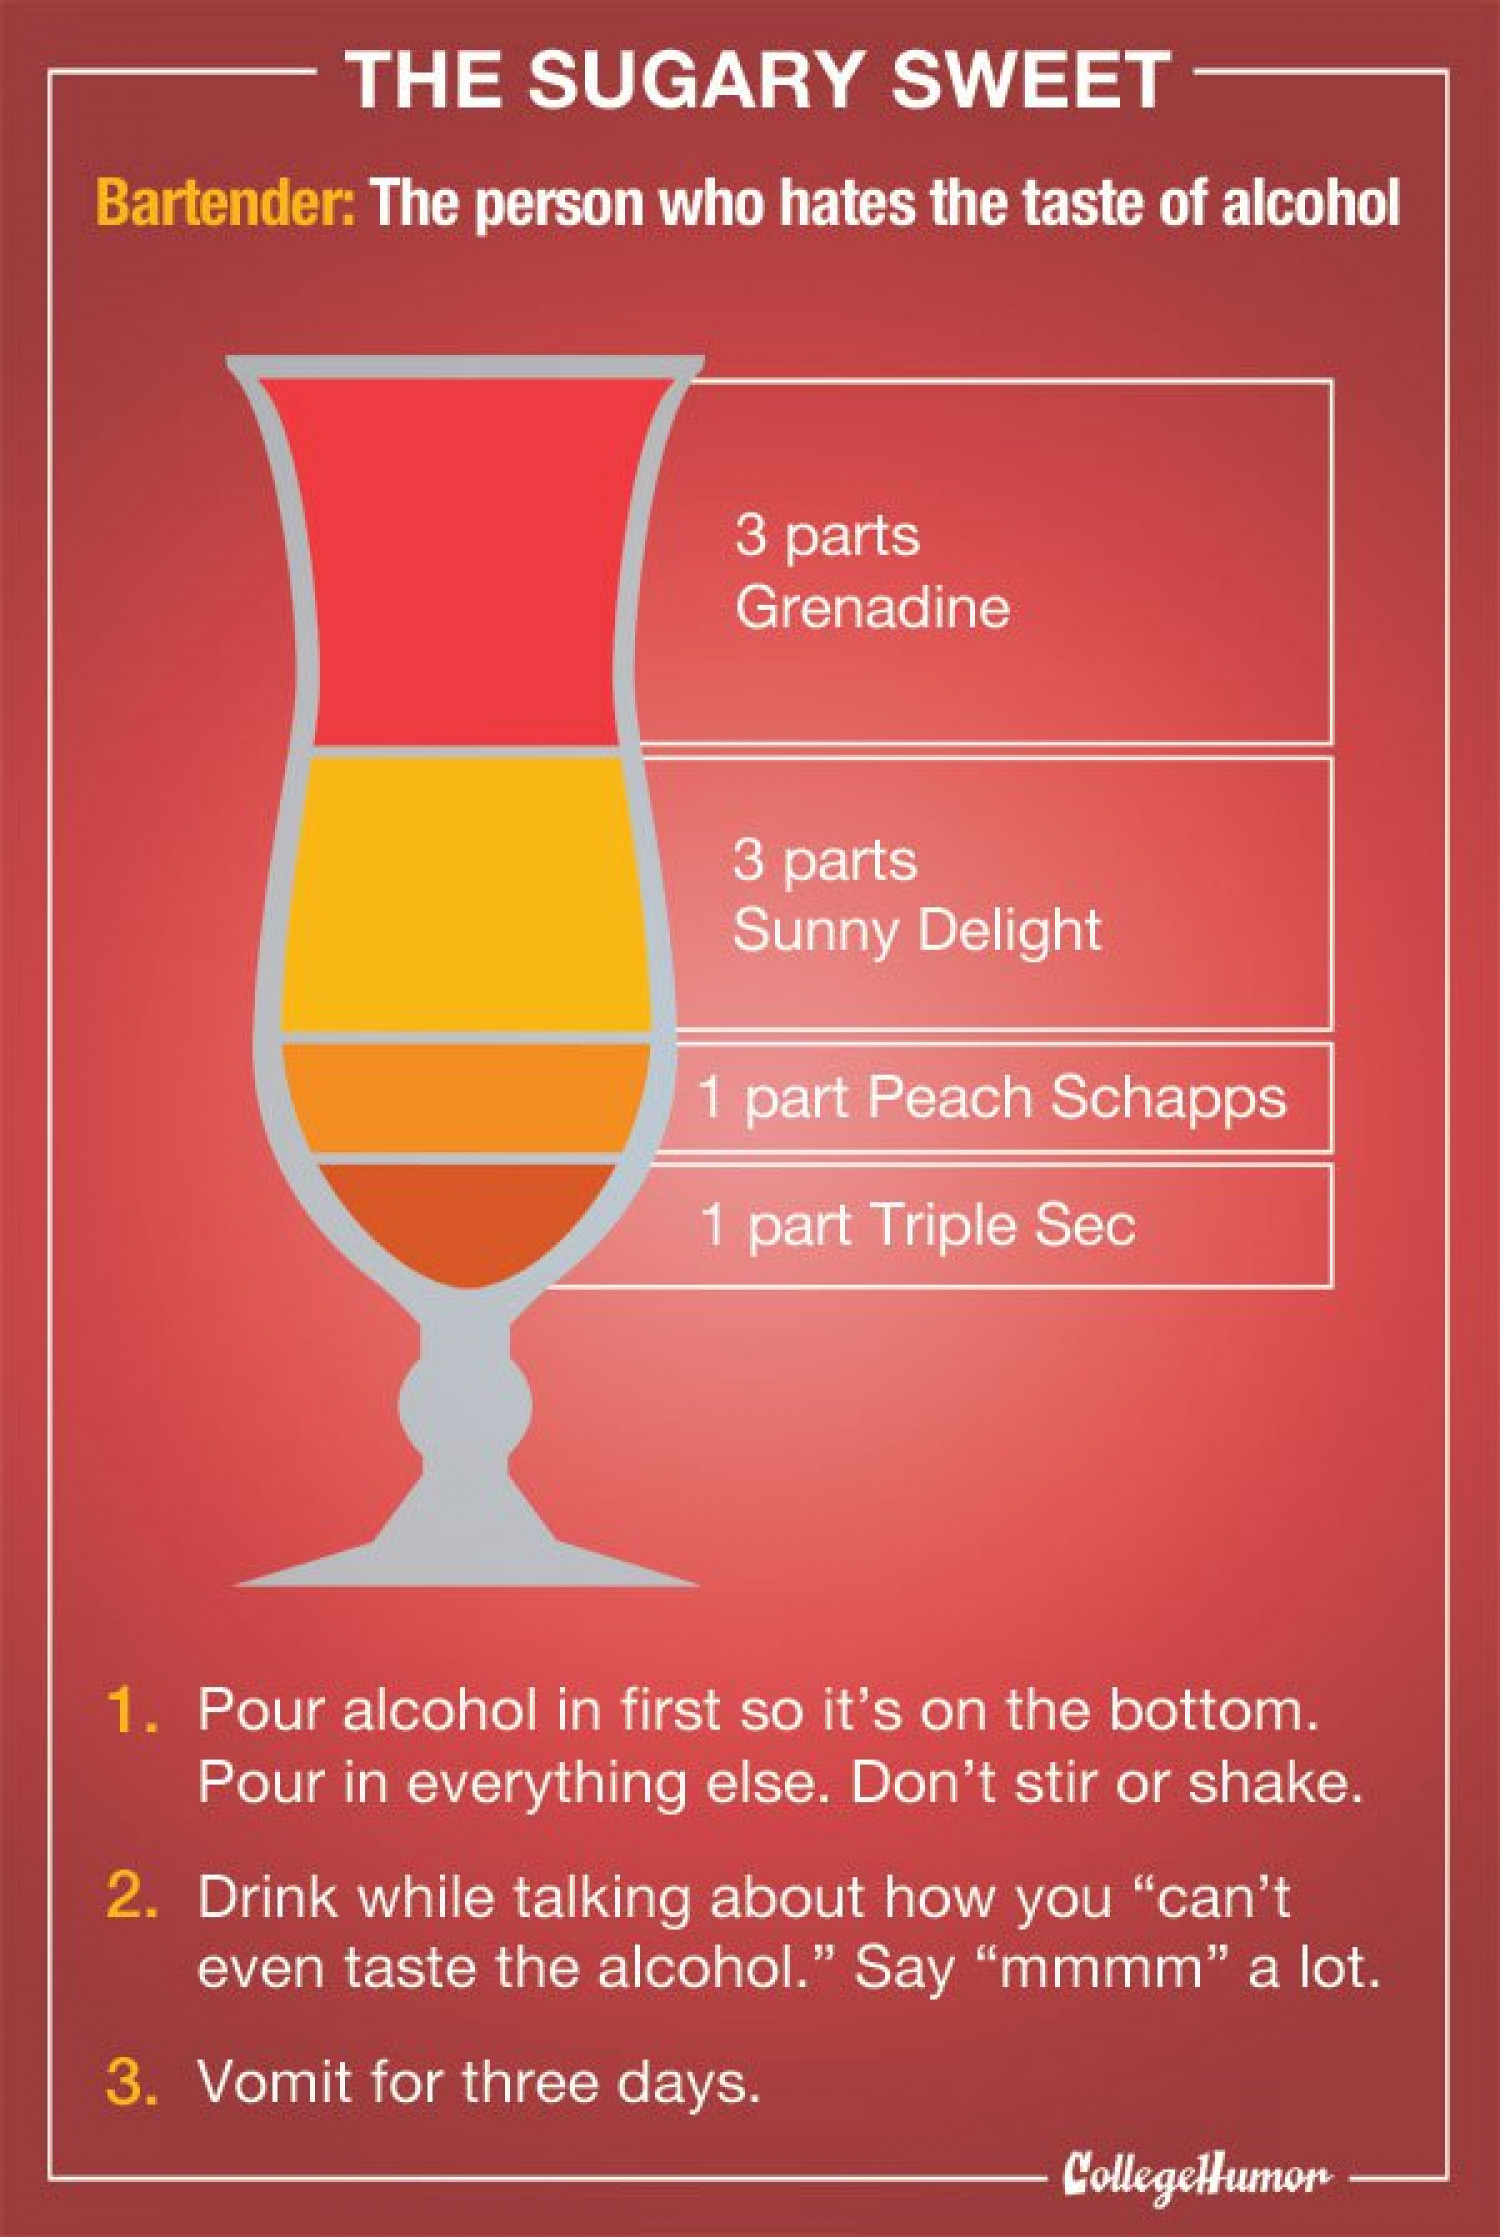 The Sugary Sweet cocktail Infographic